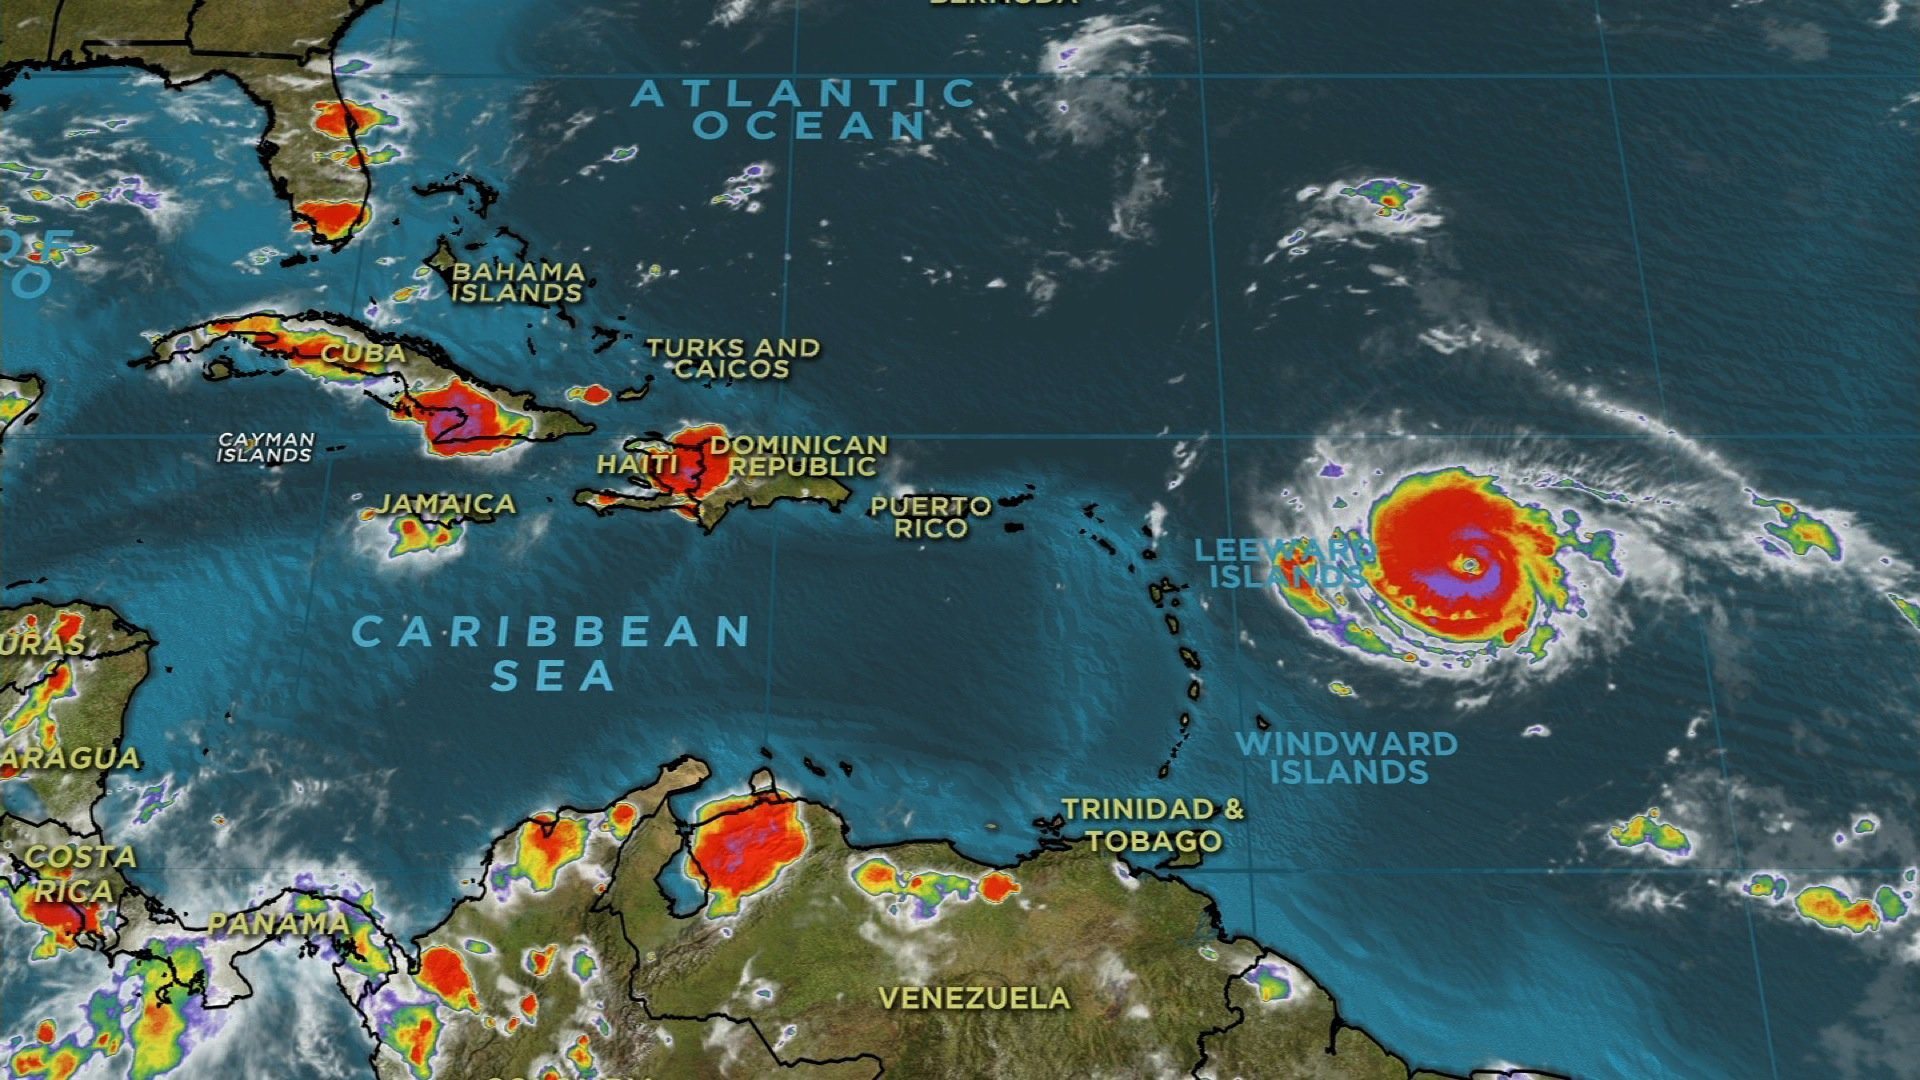 Hurricane Irma CNN map Leeward Islands-159532.jpg62448415